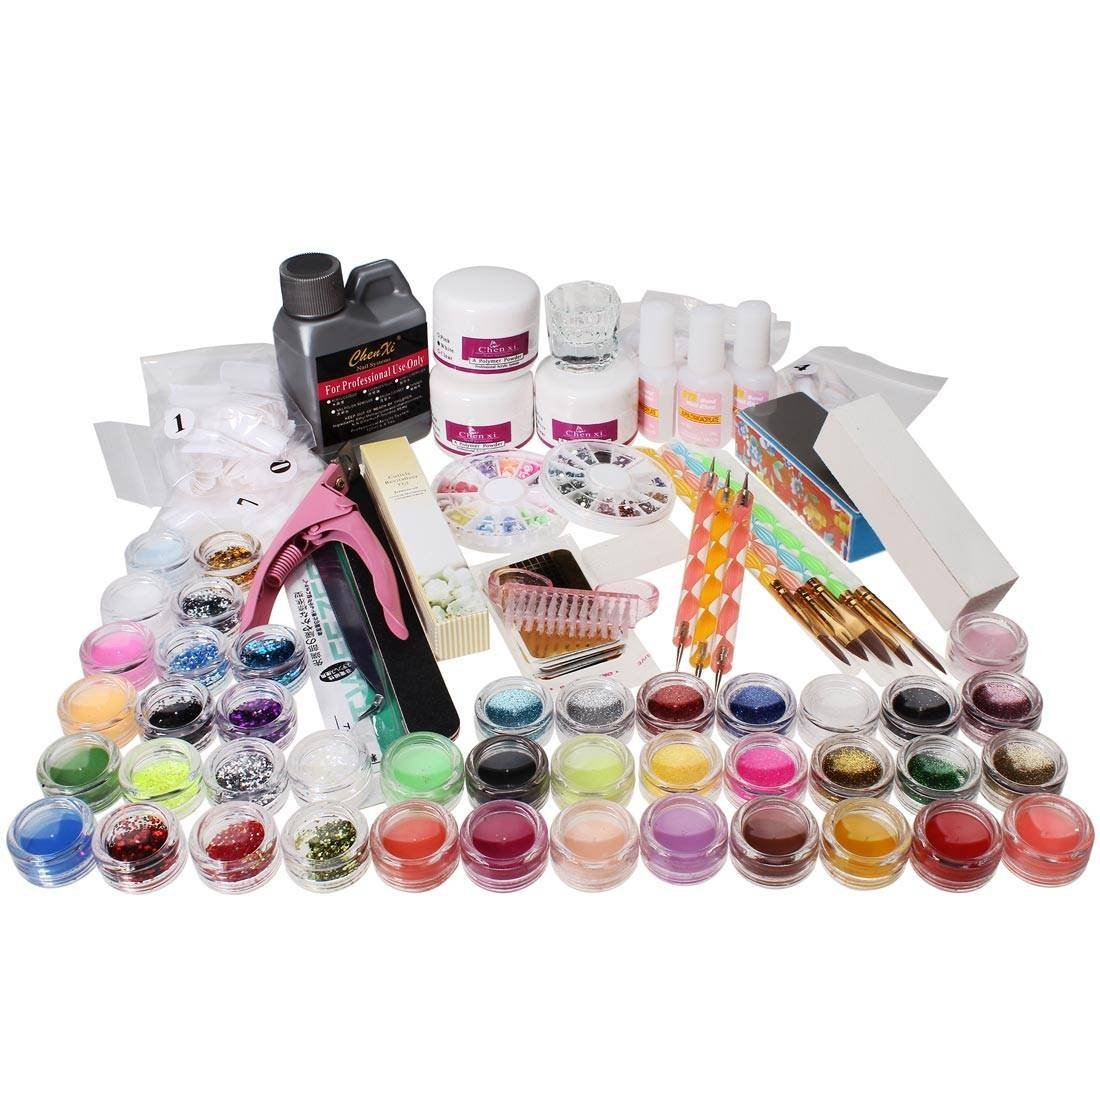 Nail Art Kits Care Nails Design Acrylic Powder Brush Glitter Tip Tools In Sets From Beauty Health On Aliexpress